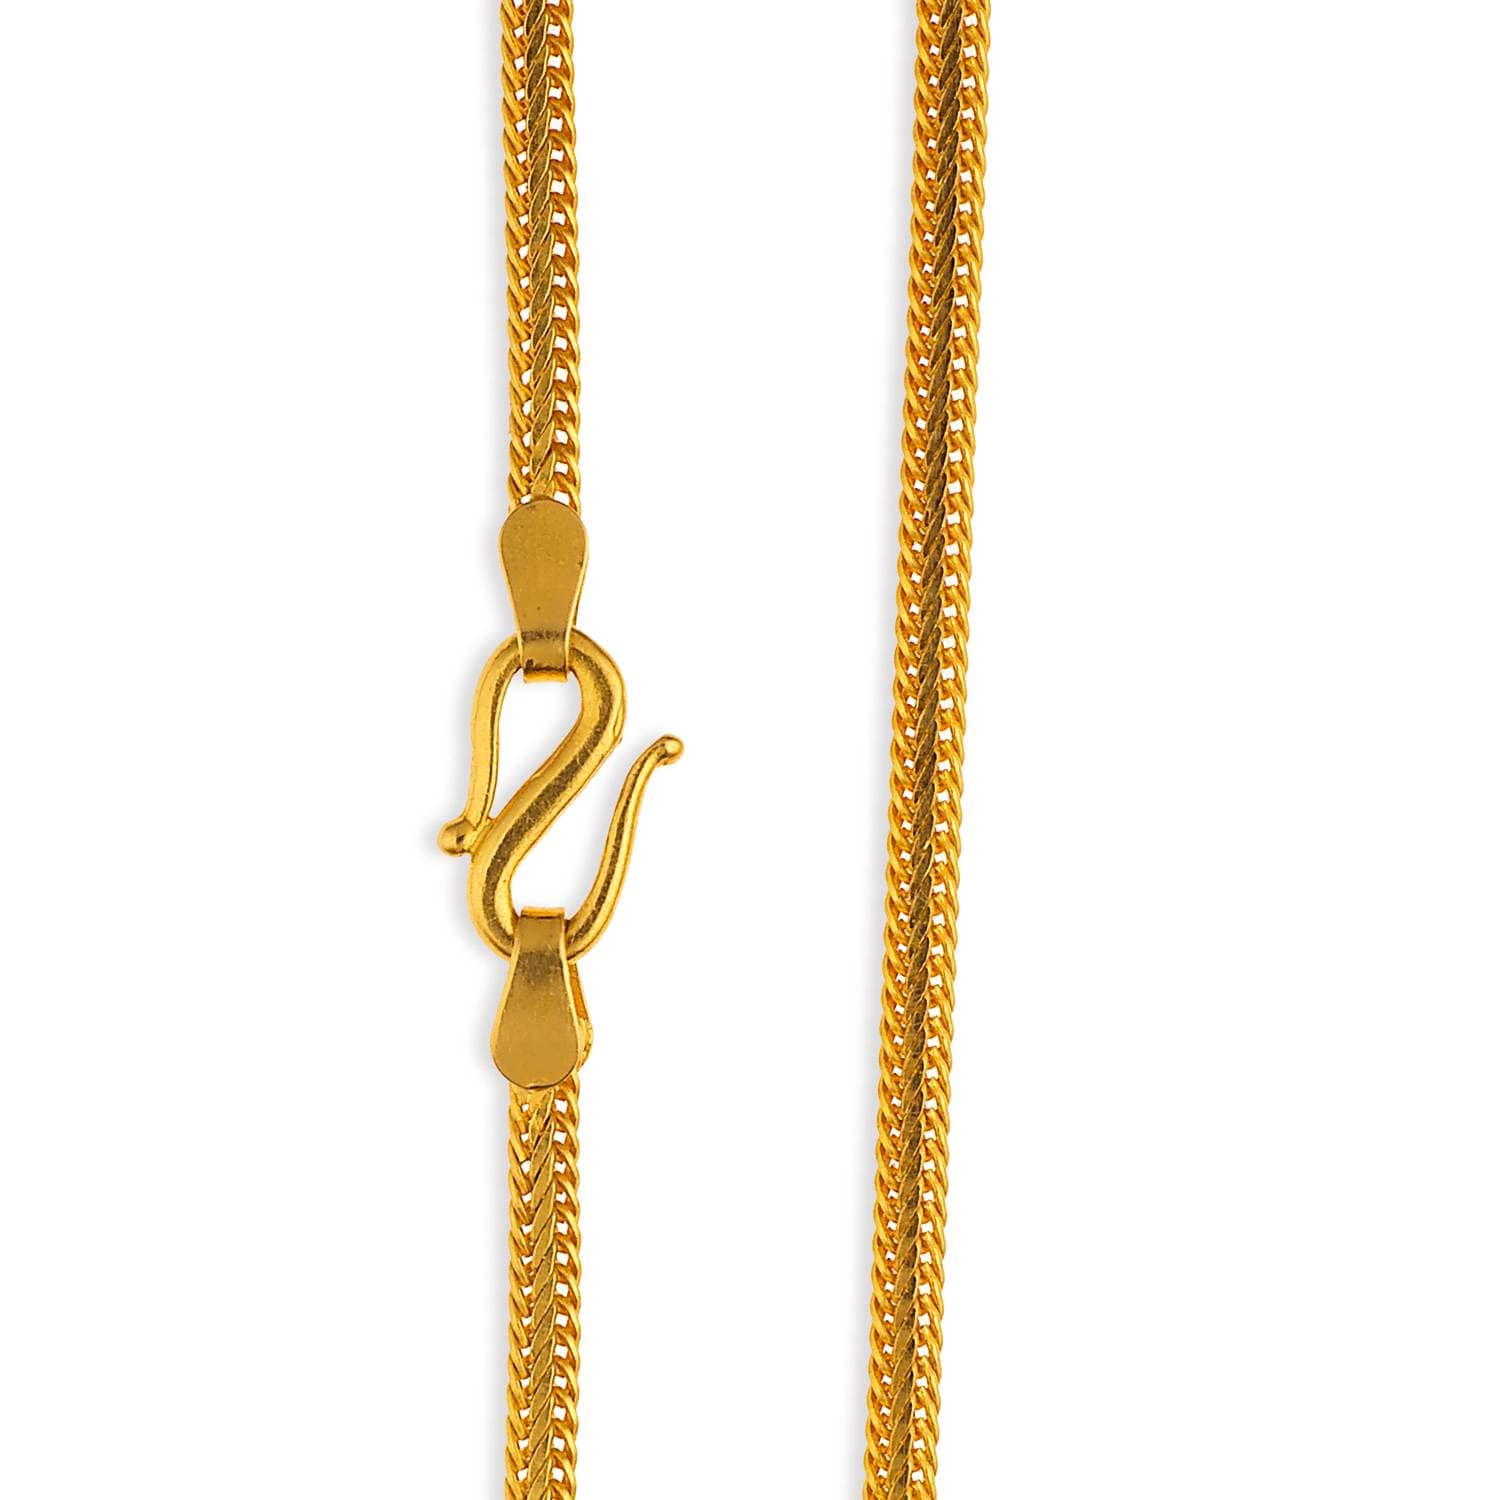 gold gods full the chain link products jewelry cuban jewellery